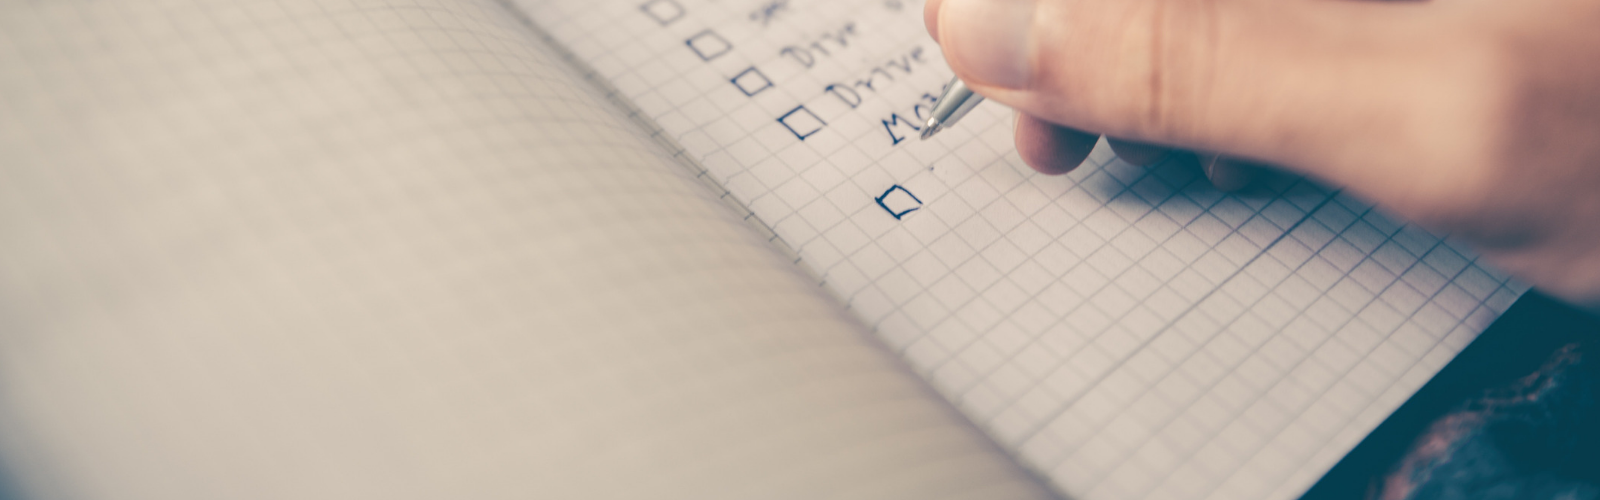 Business Owner's Checklist for Starting the New Year Right